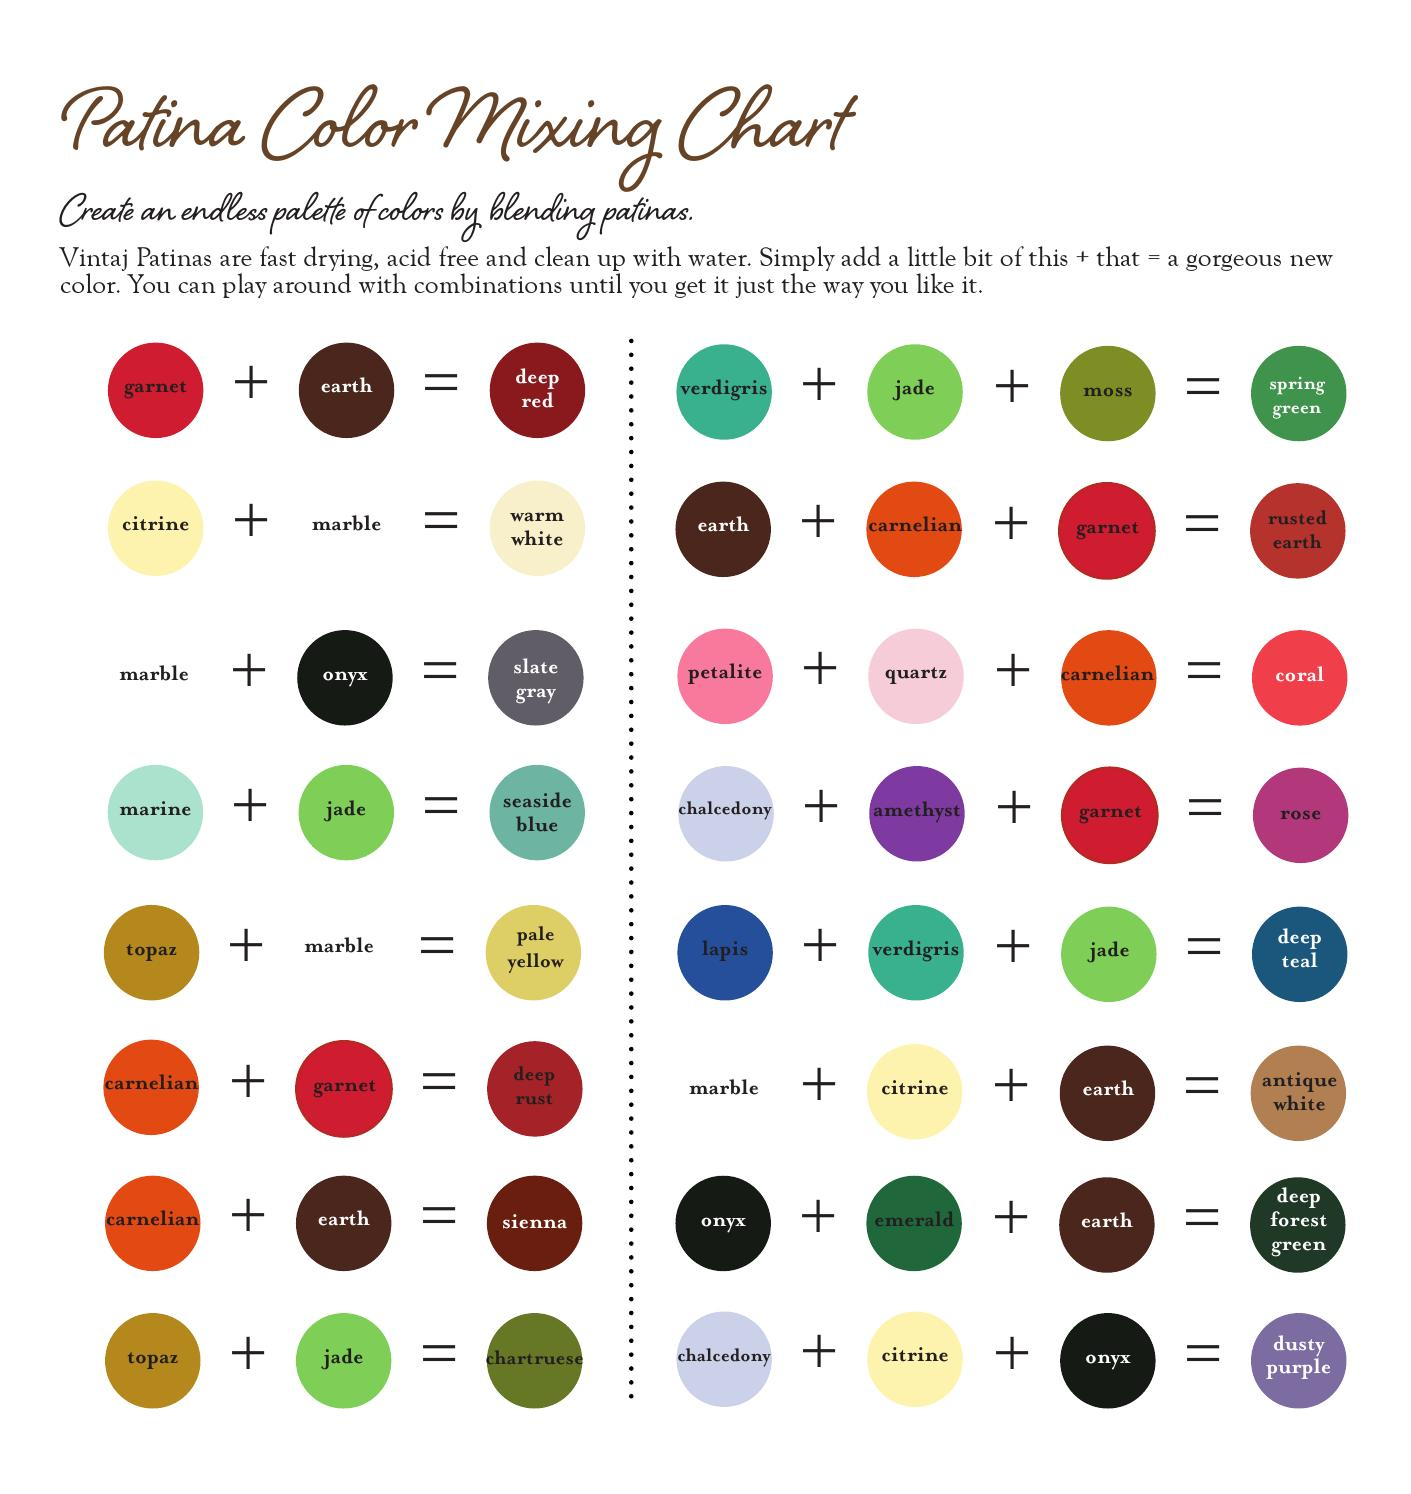 patina color mixing chart by vintaj u00ae